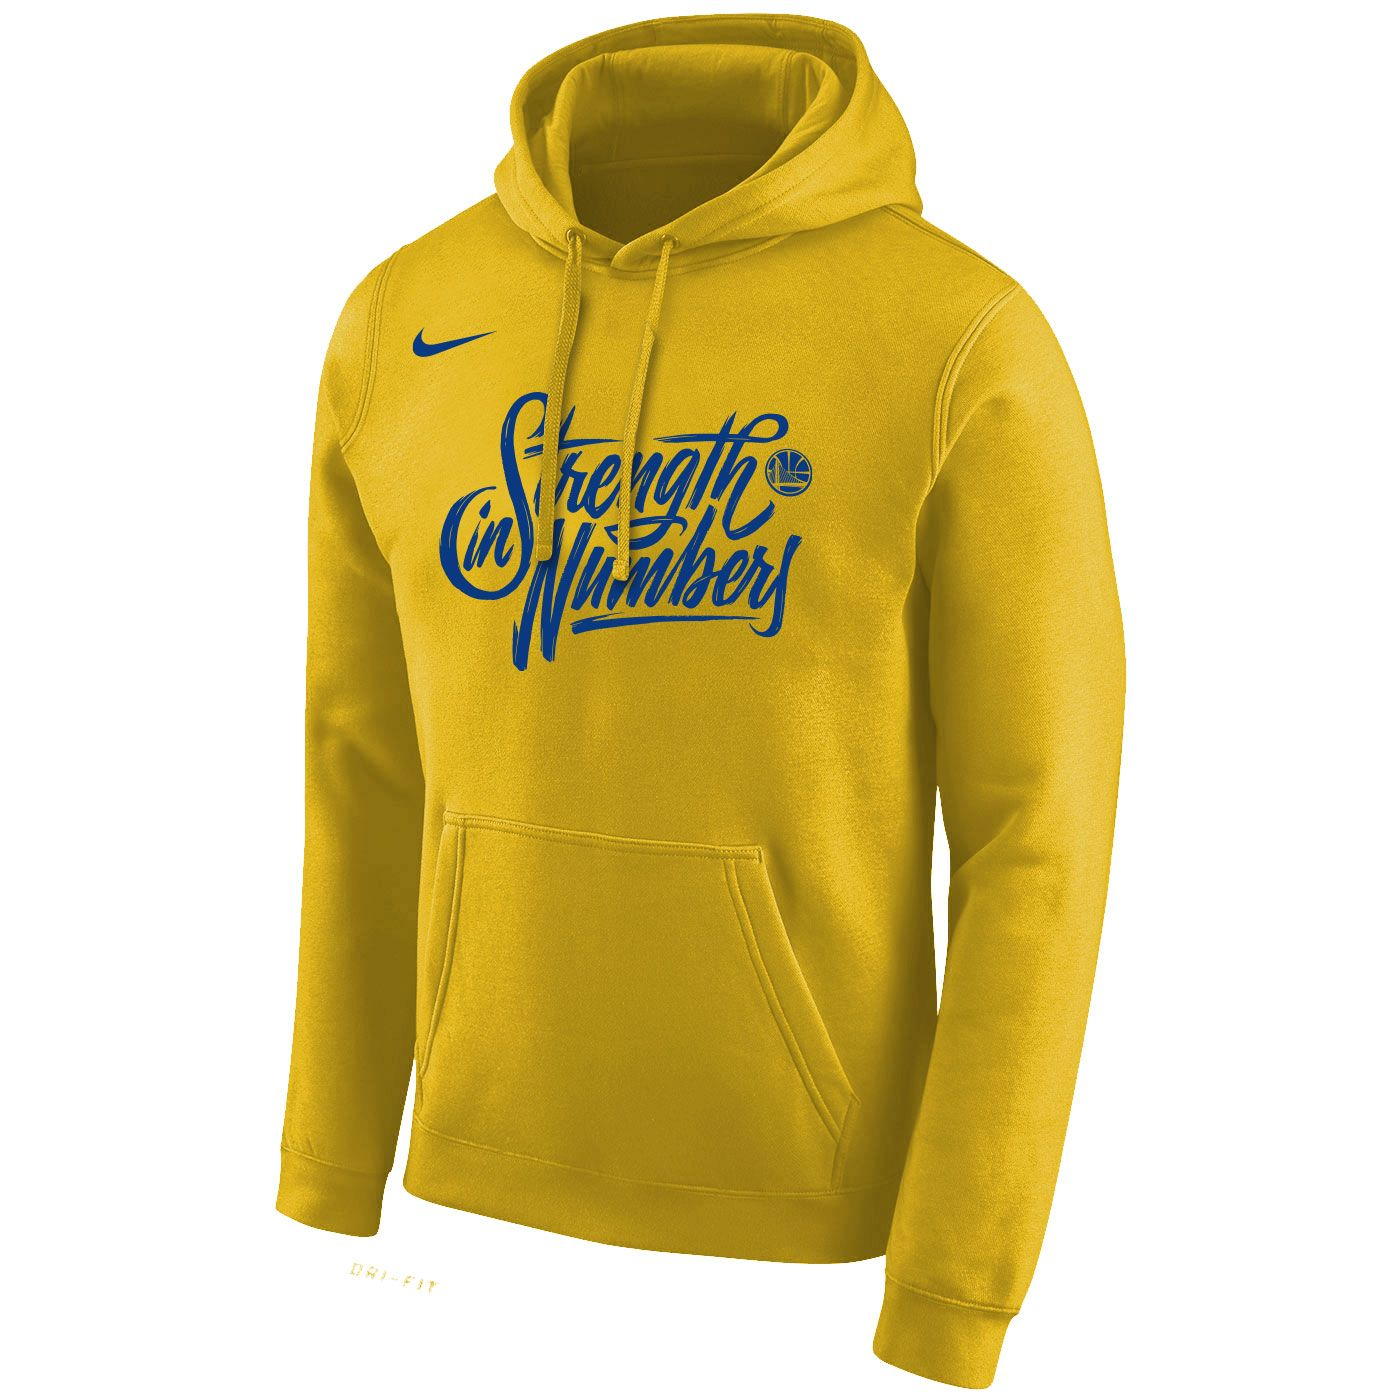 a73e3ee9311d Golden State Warriors Nike Men s  Strength In Numbers  Stadium Club  Pullover Fleece Hoodie - Gold - Golden State Warriors - Official Online  Store